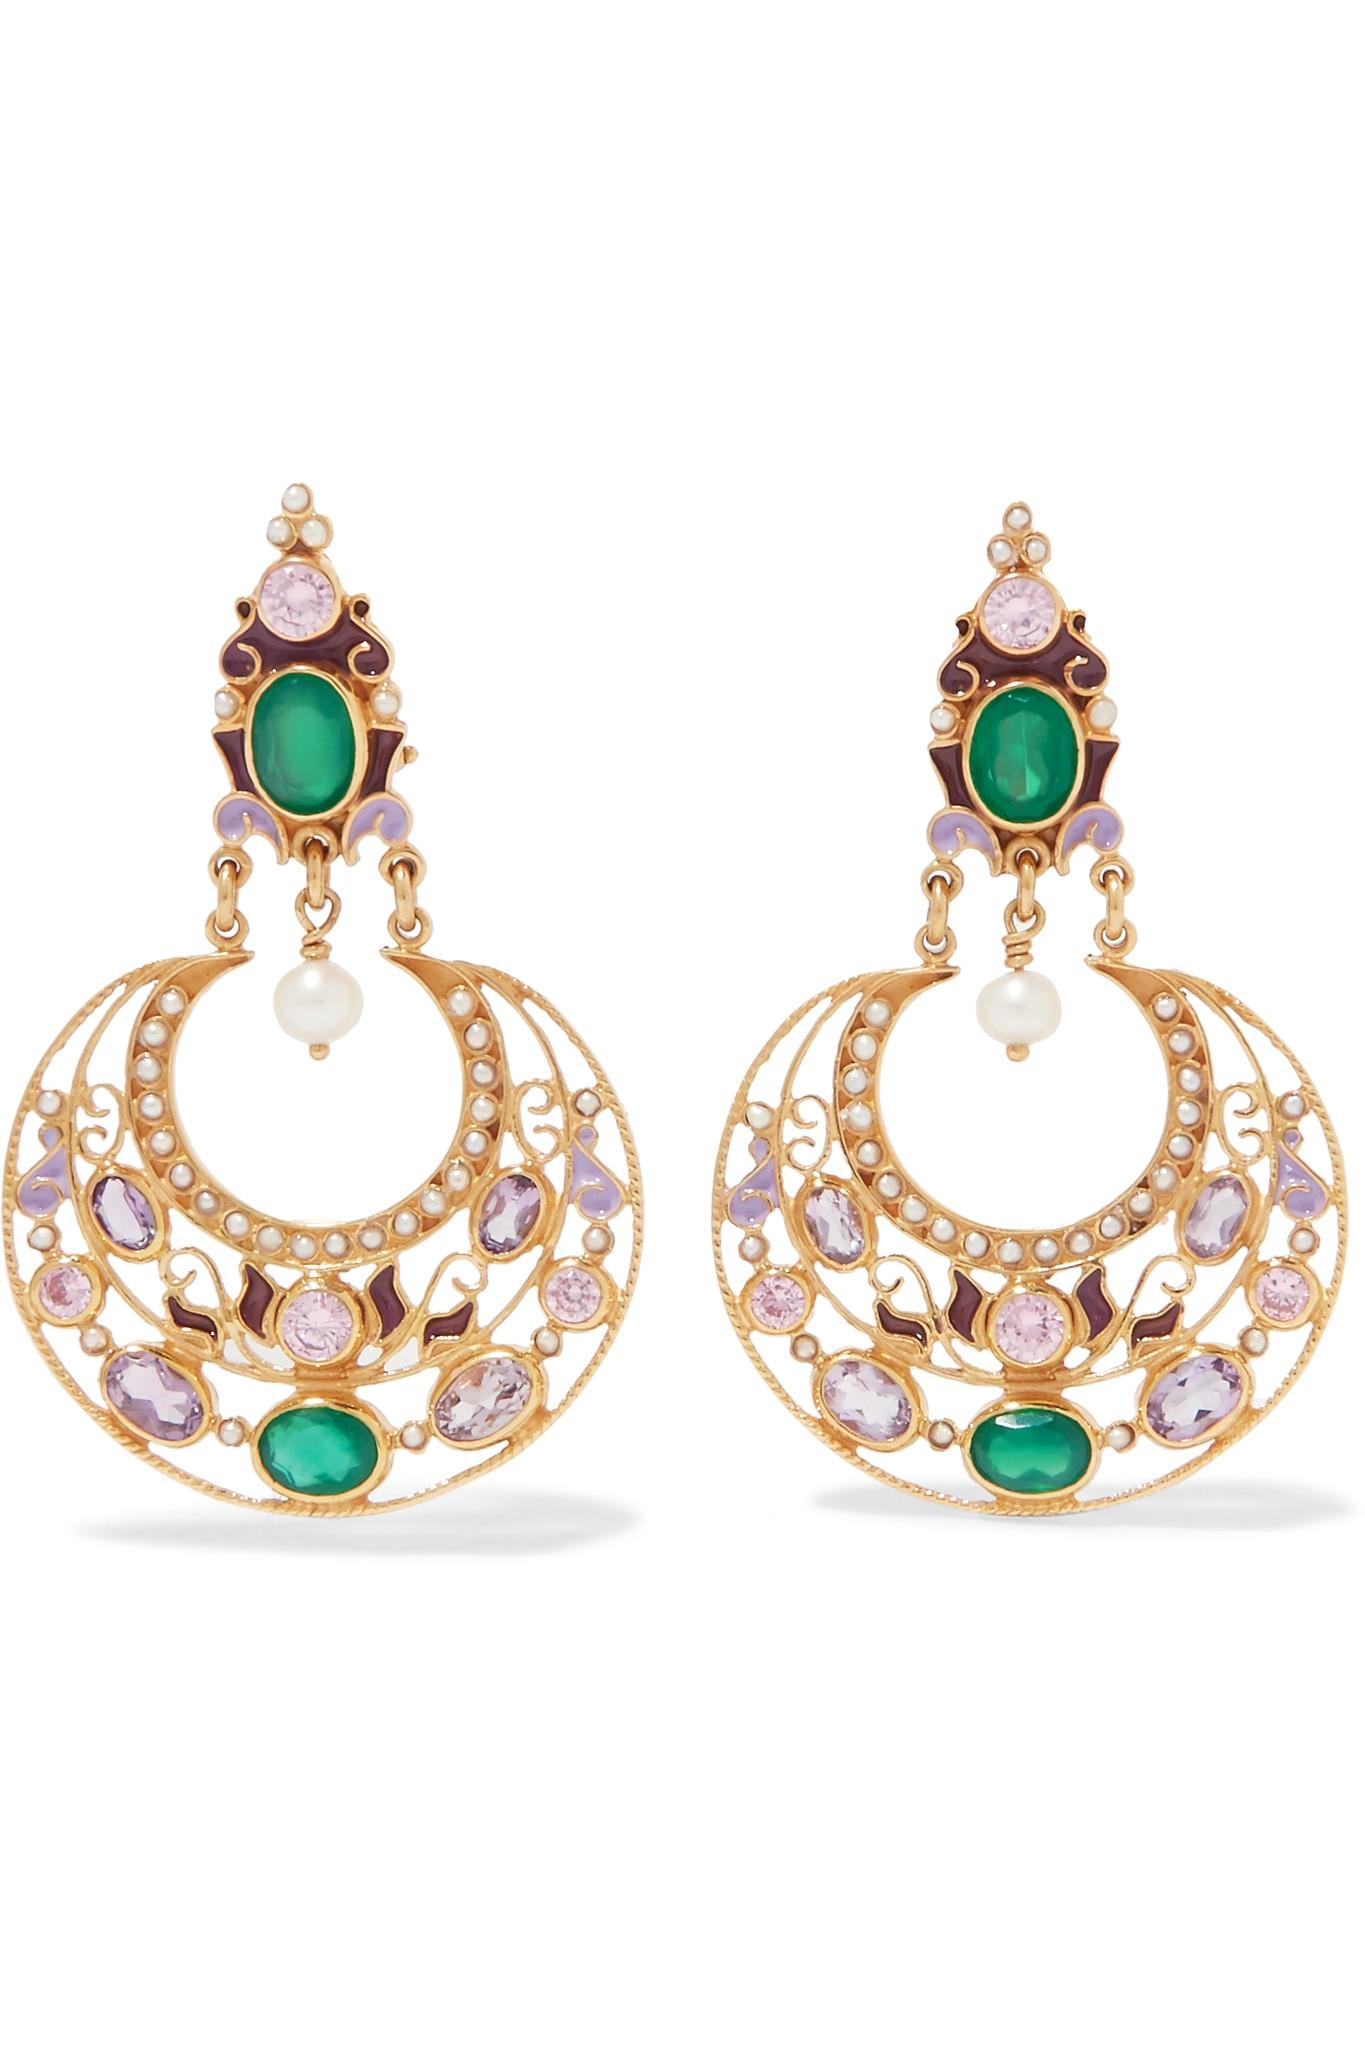 Percossi Papi Gold-plated And Enamel Multi-stone Clip Earrings - Turquoise 8pFn06ky